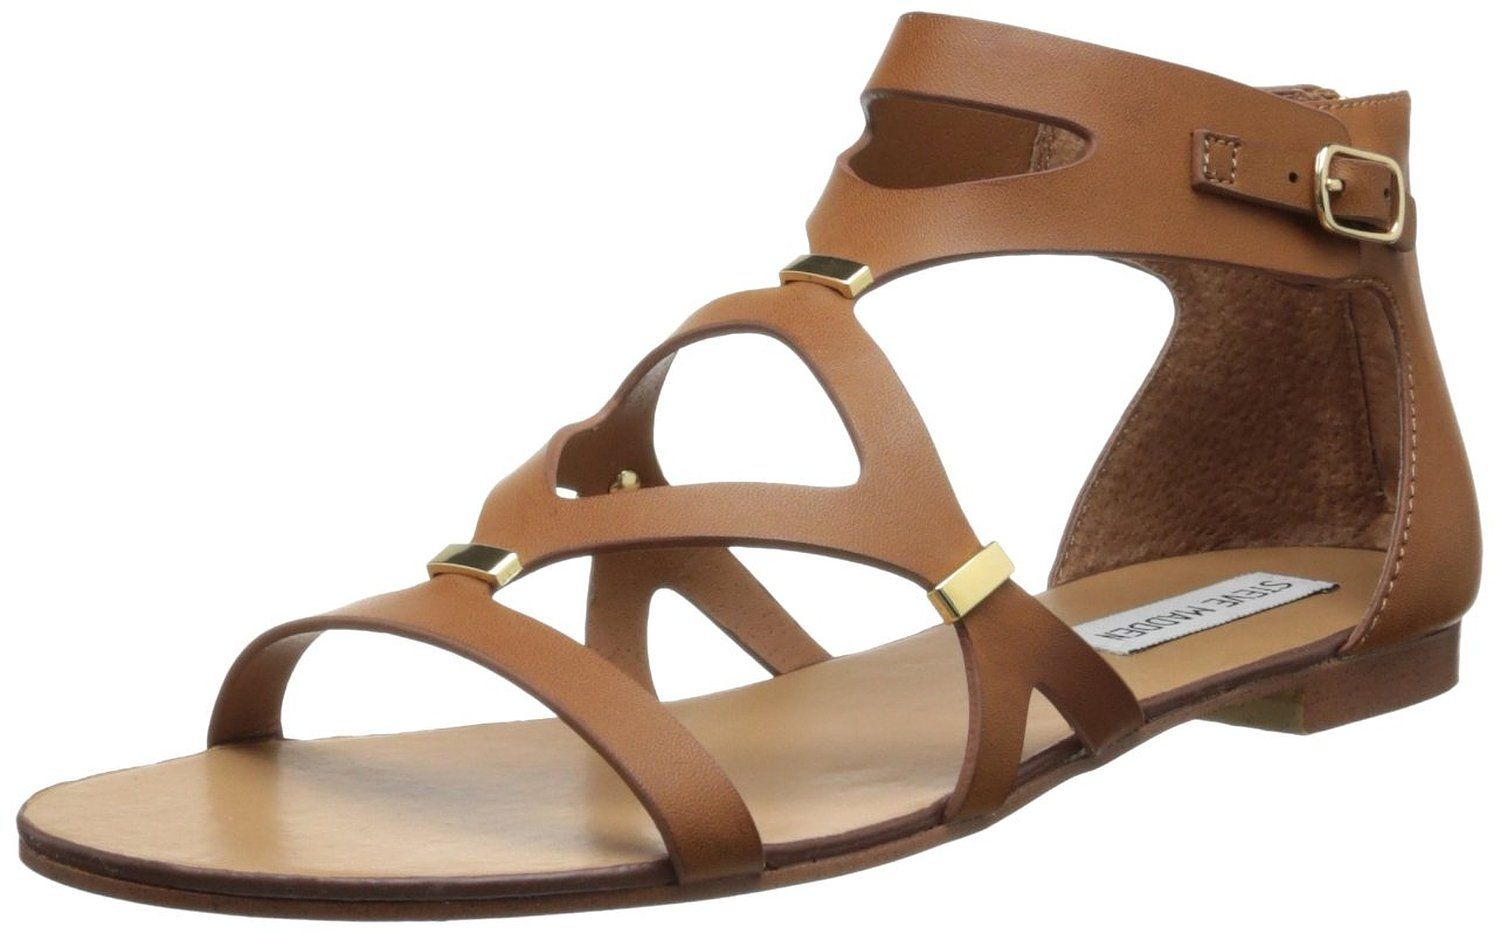 b3c748f51b1 Steve Madden release a Synthetic Women s Comma Gladiator Sandal with a man  made sole and rear zip entry with a functional buckle accent.